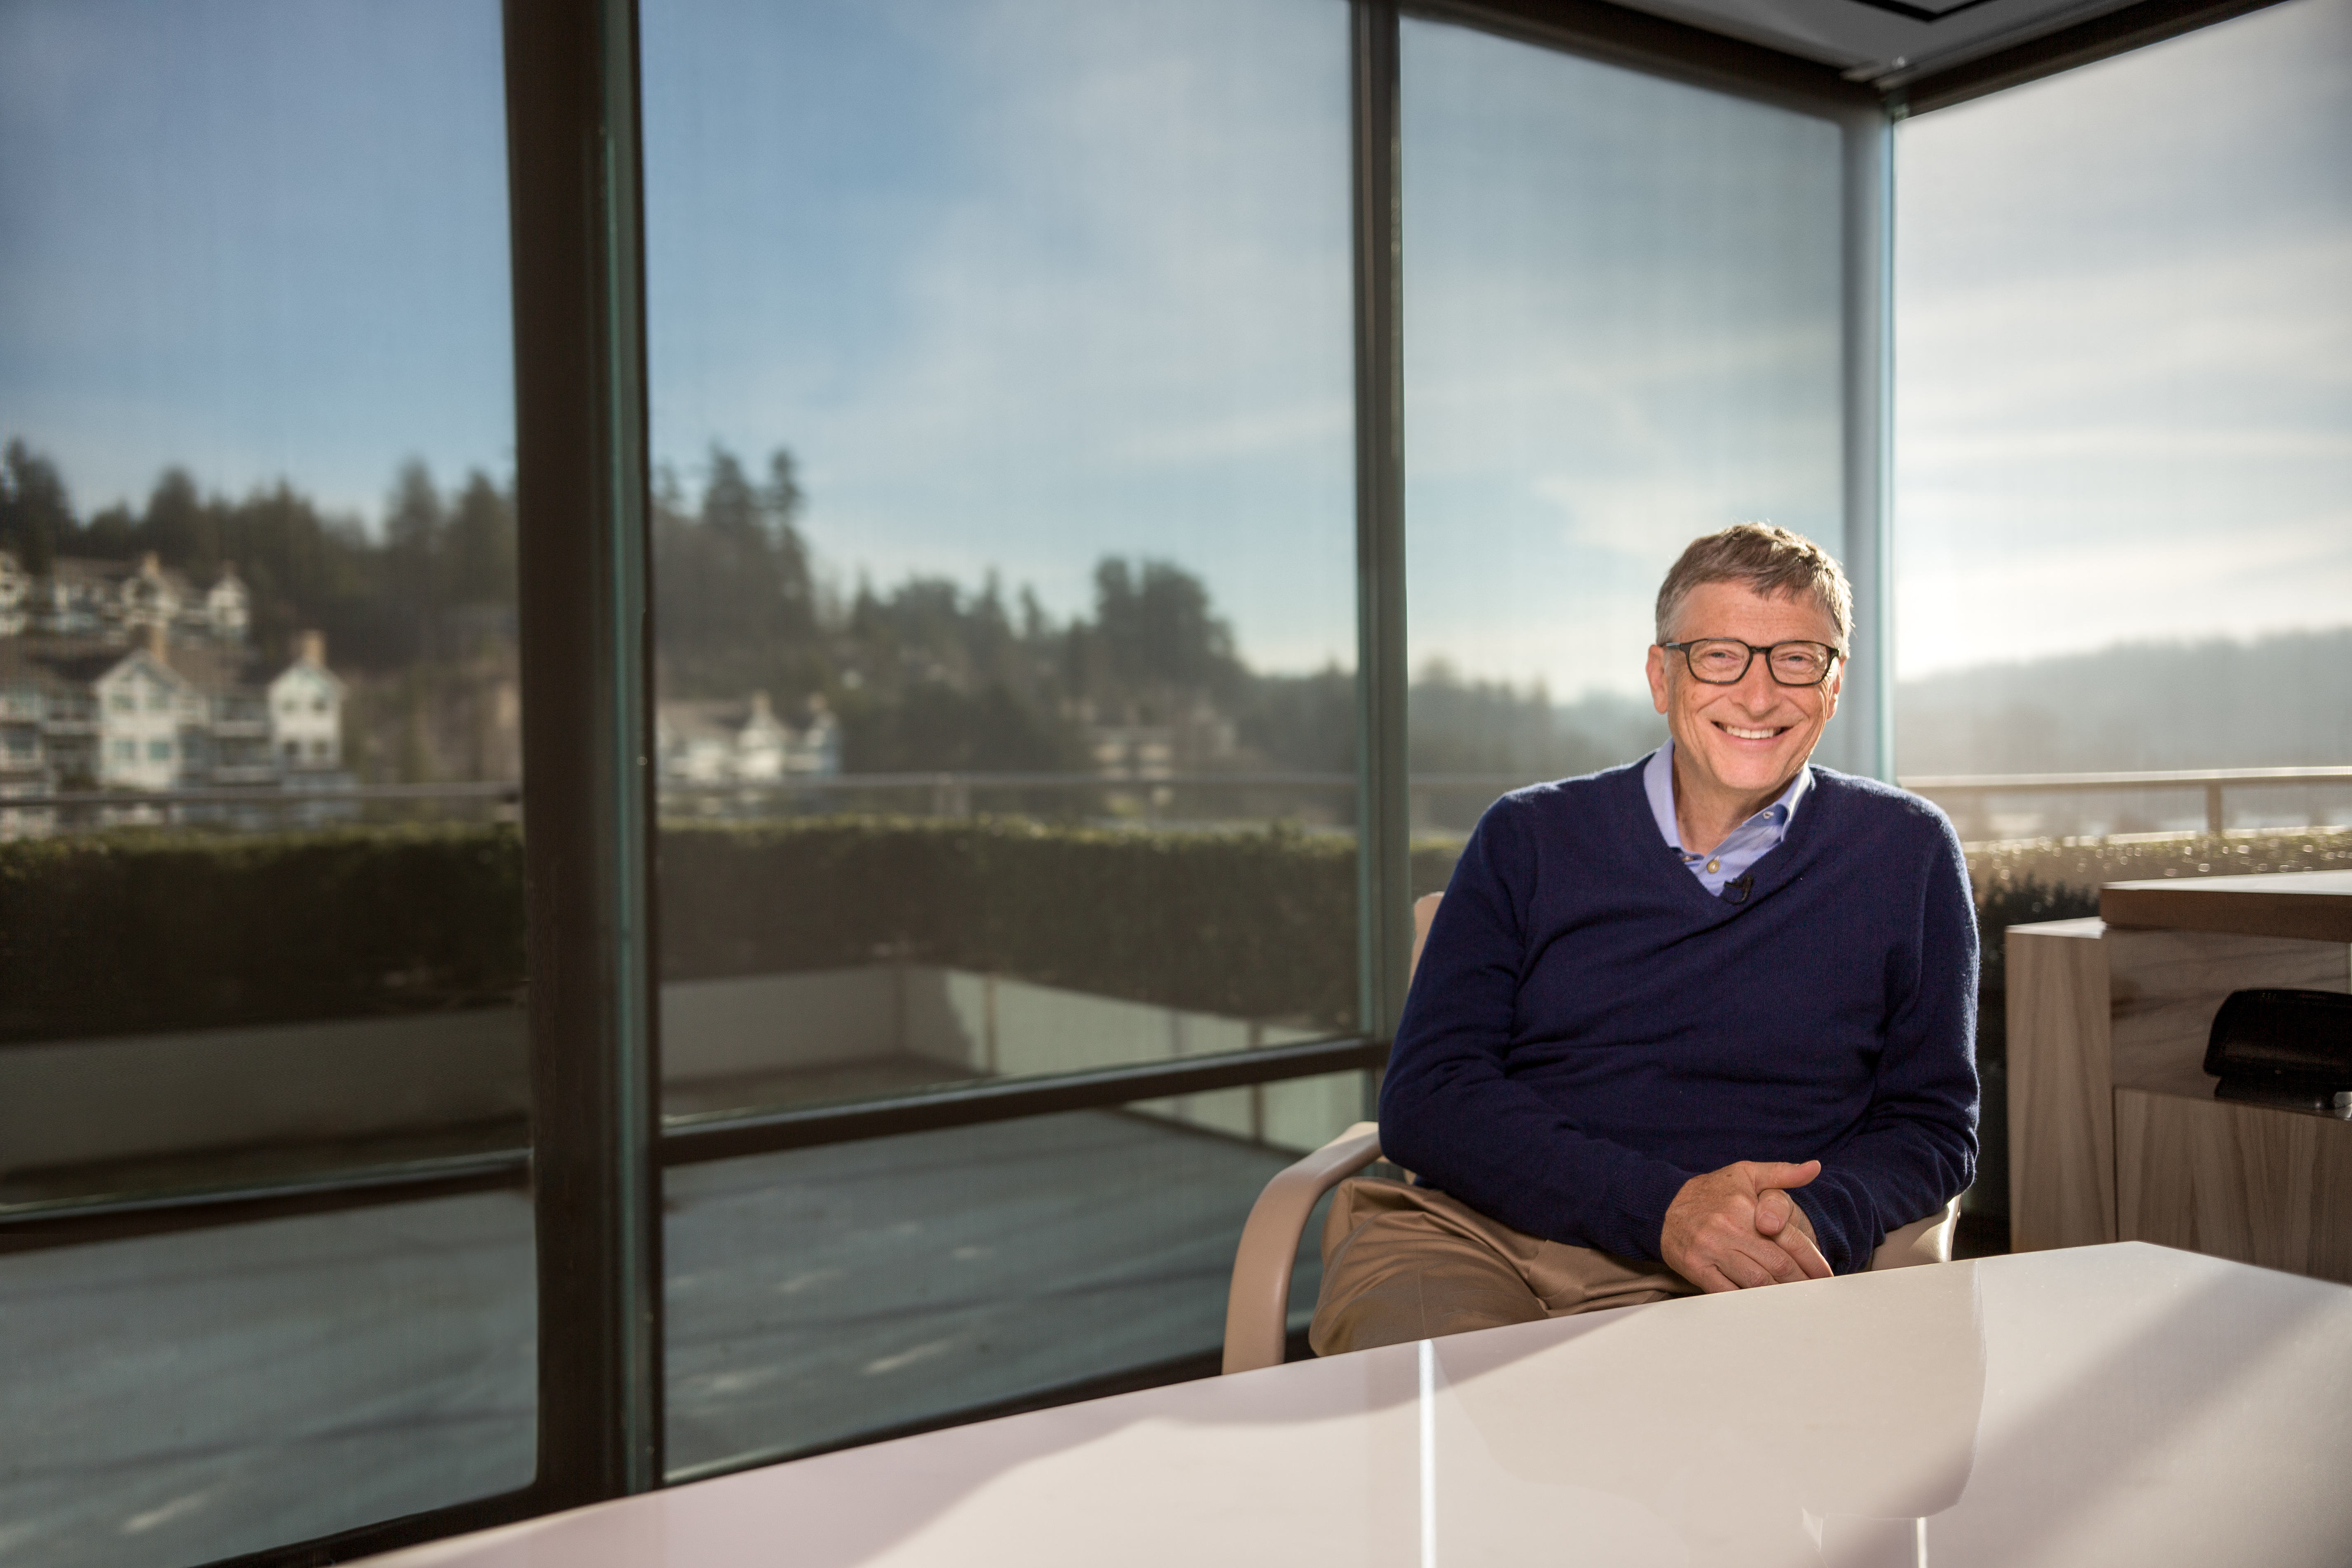 bill gates interior house. Bill Gates And The Verge  How Technology Will Change The World By 2030